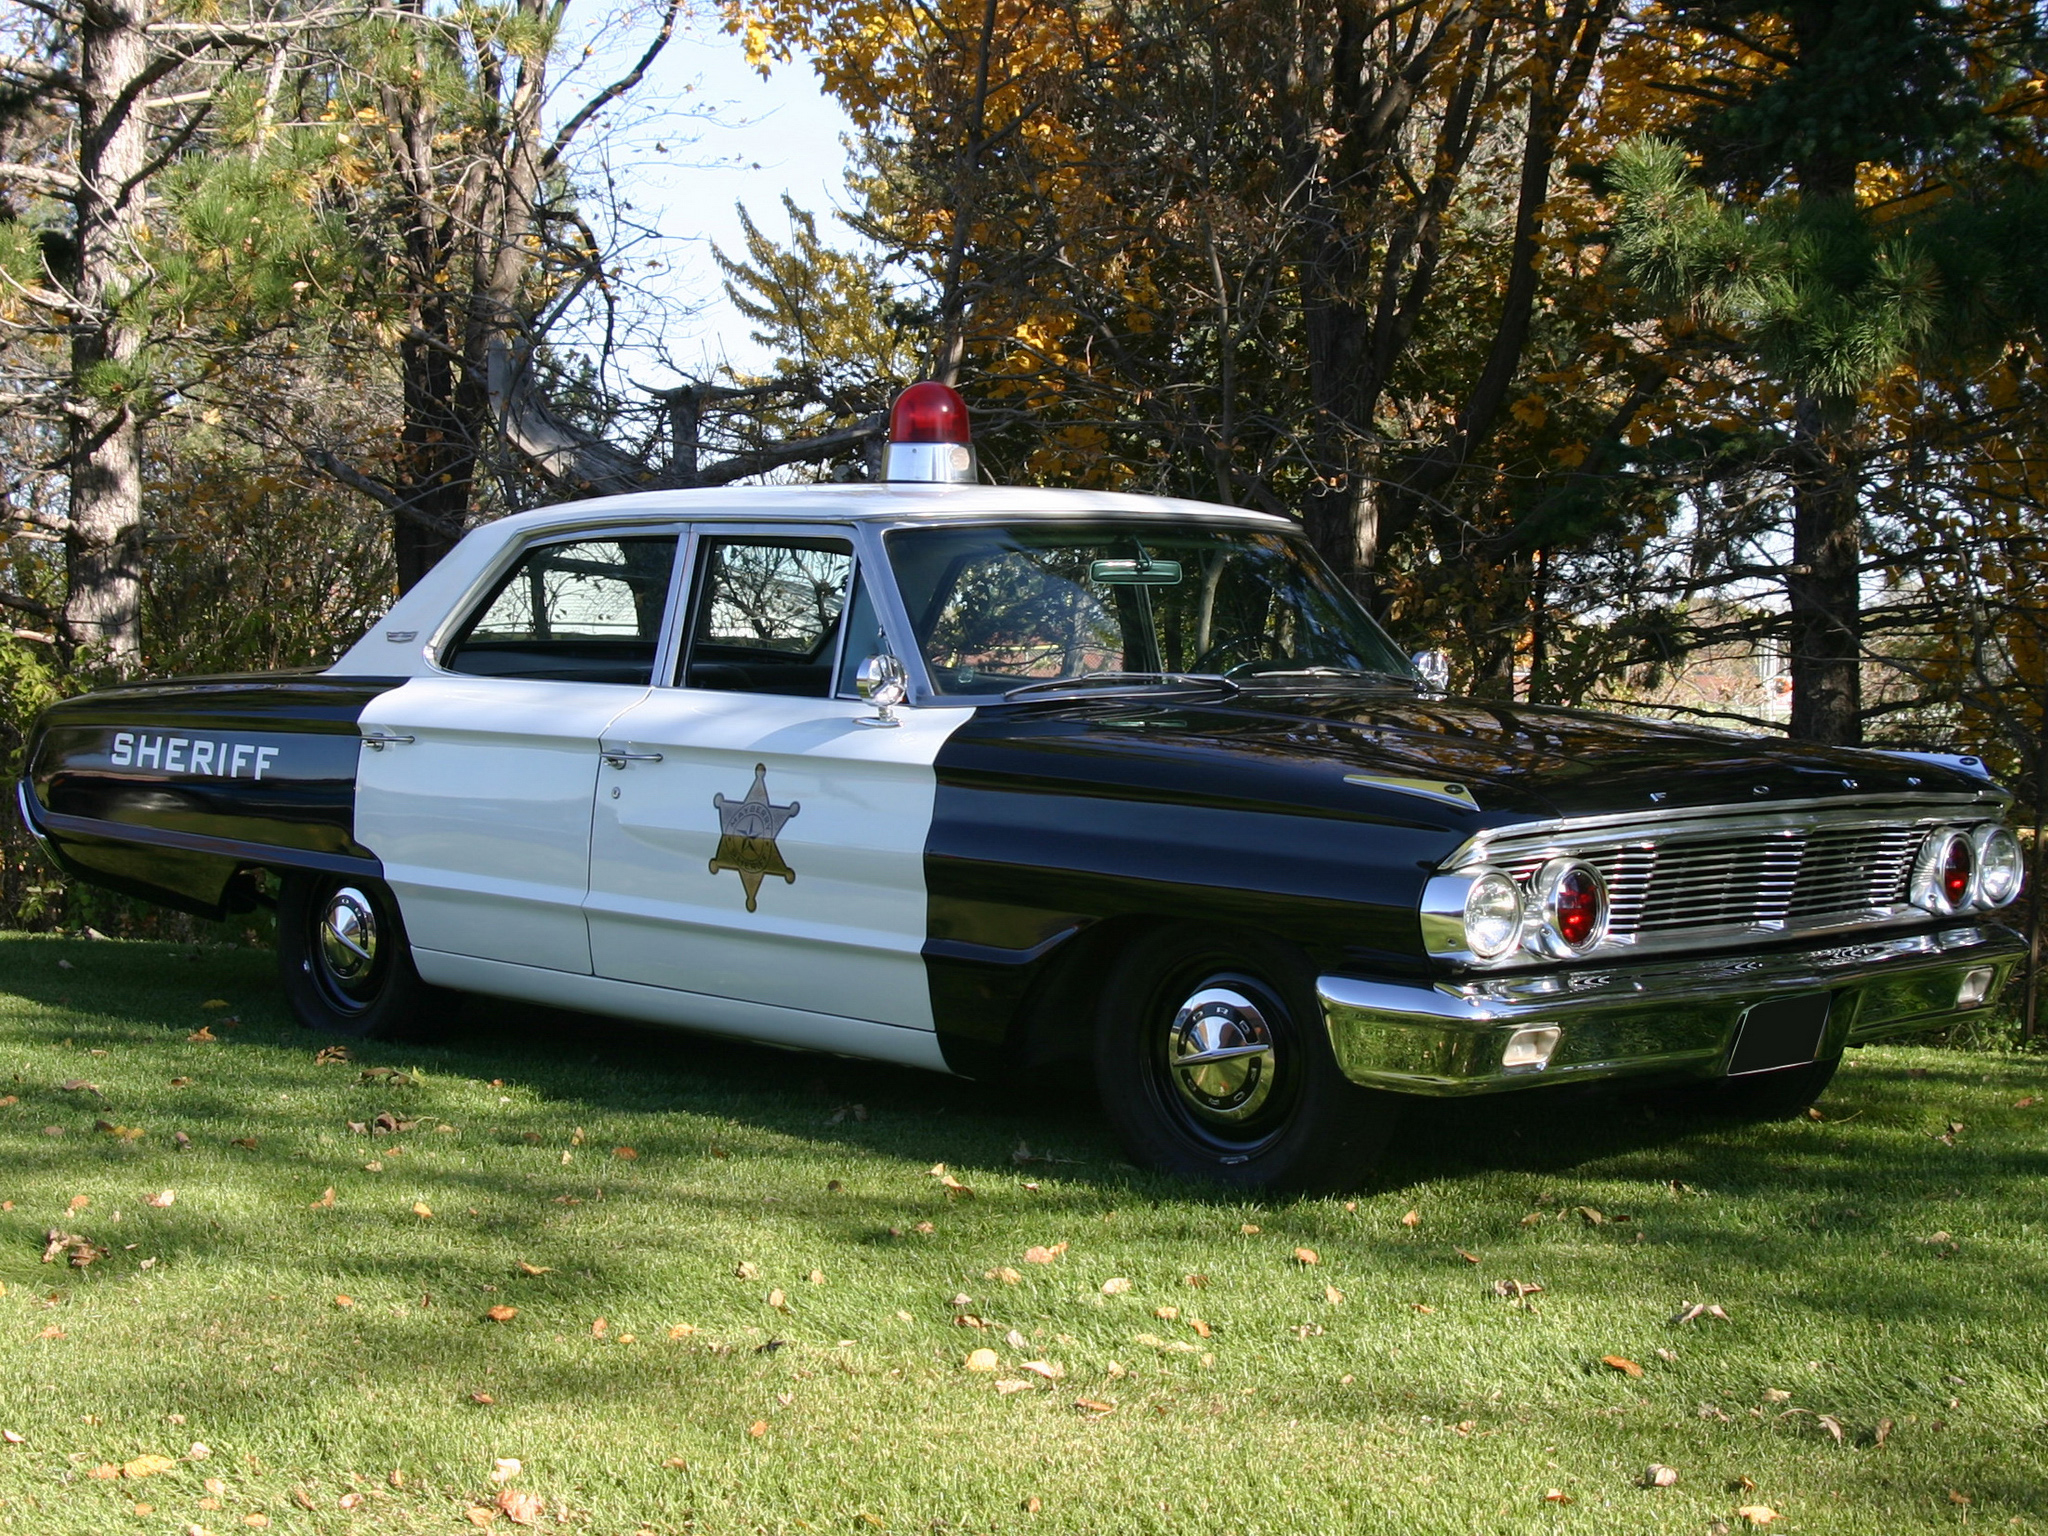 1964 Ford Galaxie 500 4 Door Sedan Police Classic Wallpaper